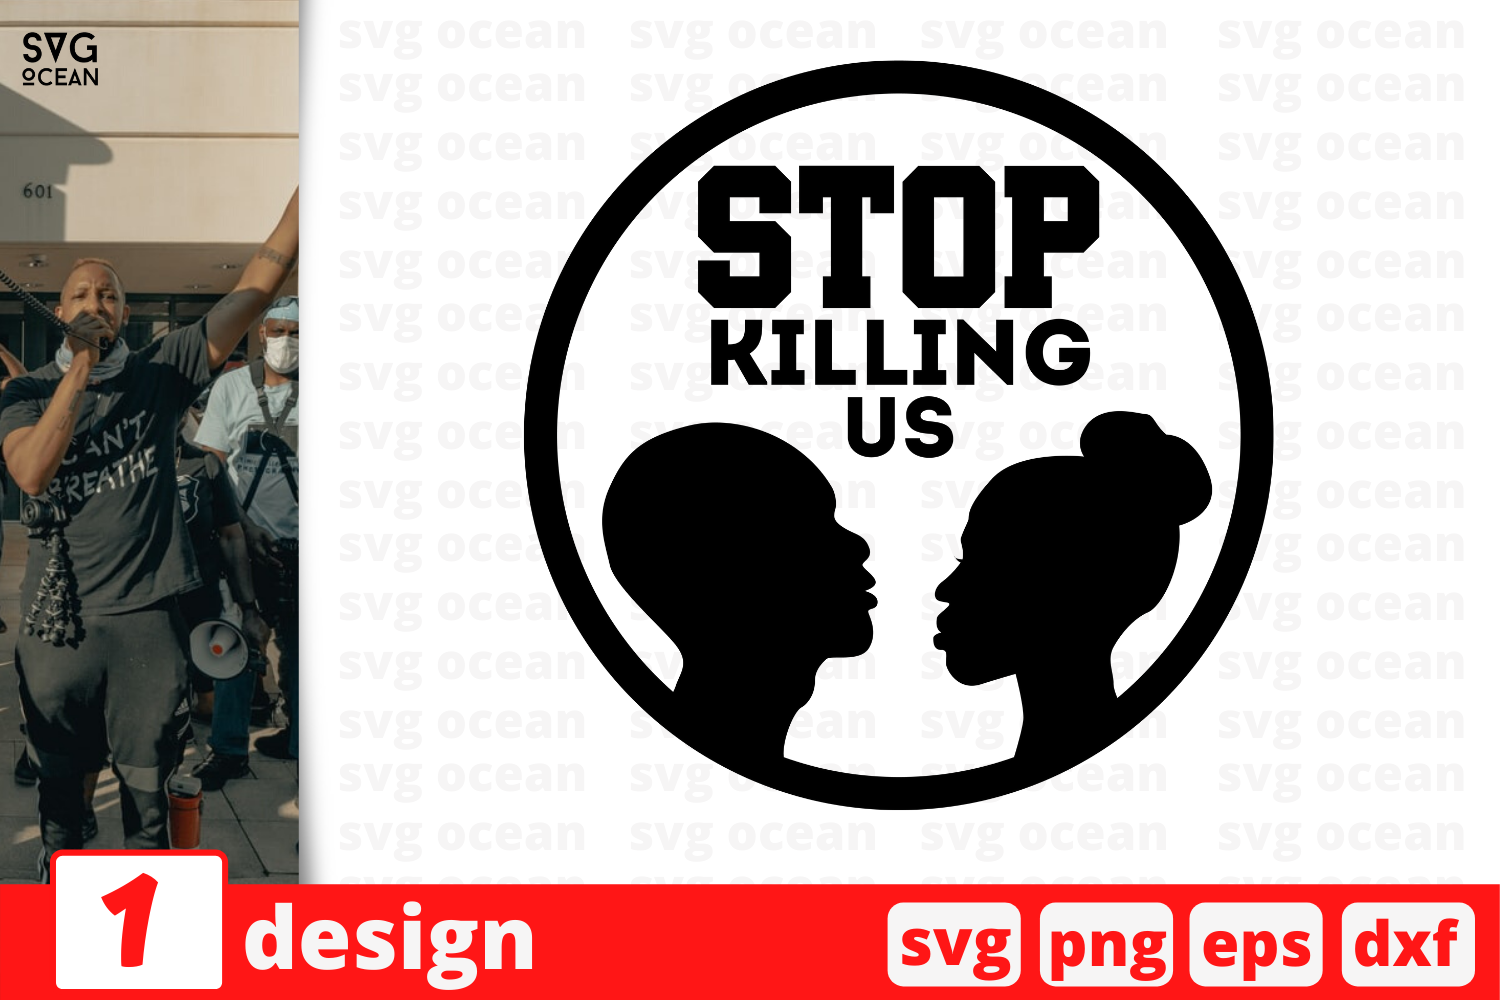 Download Free Stop Killing Us Graphic By Svgocean Creative Fabrica for Cricut Explore, Silhouette and other cutting machines.